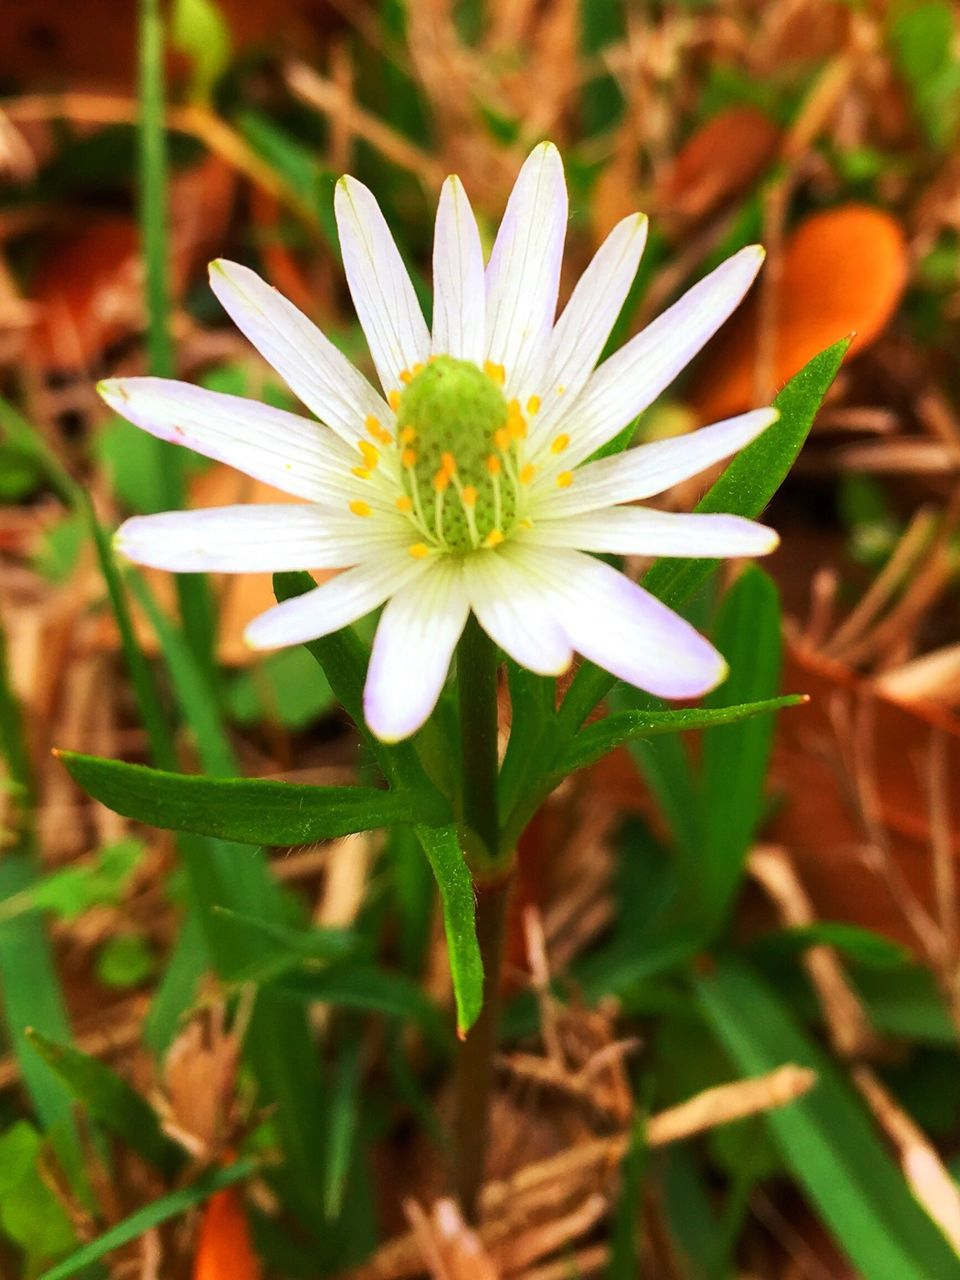 flower, petal, nature, fragility, growth, flower head, freshness, beauty in nature, plant, blooming, close-up, no people, day, outdoors